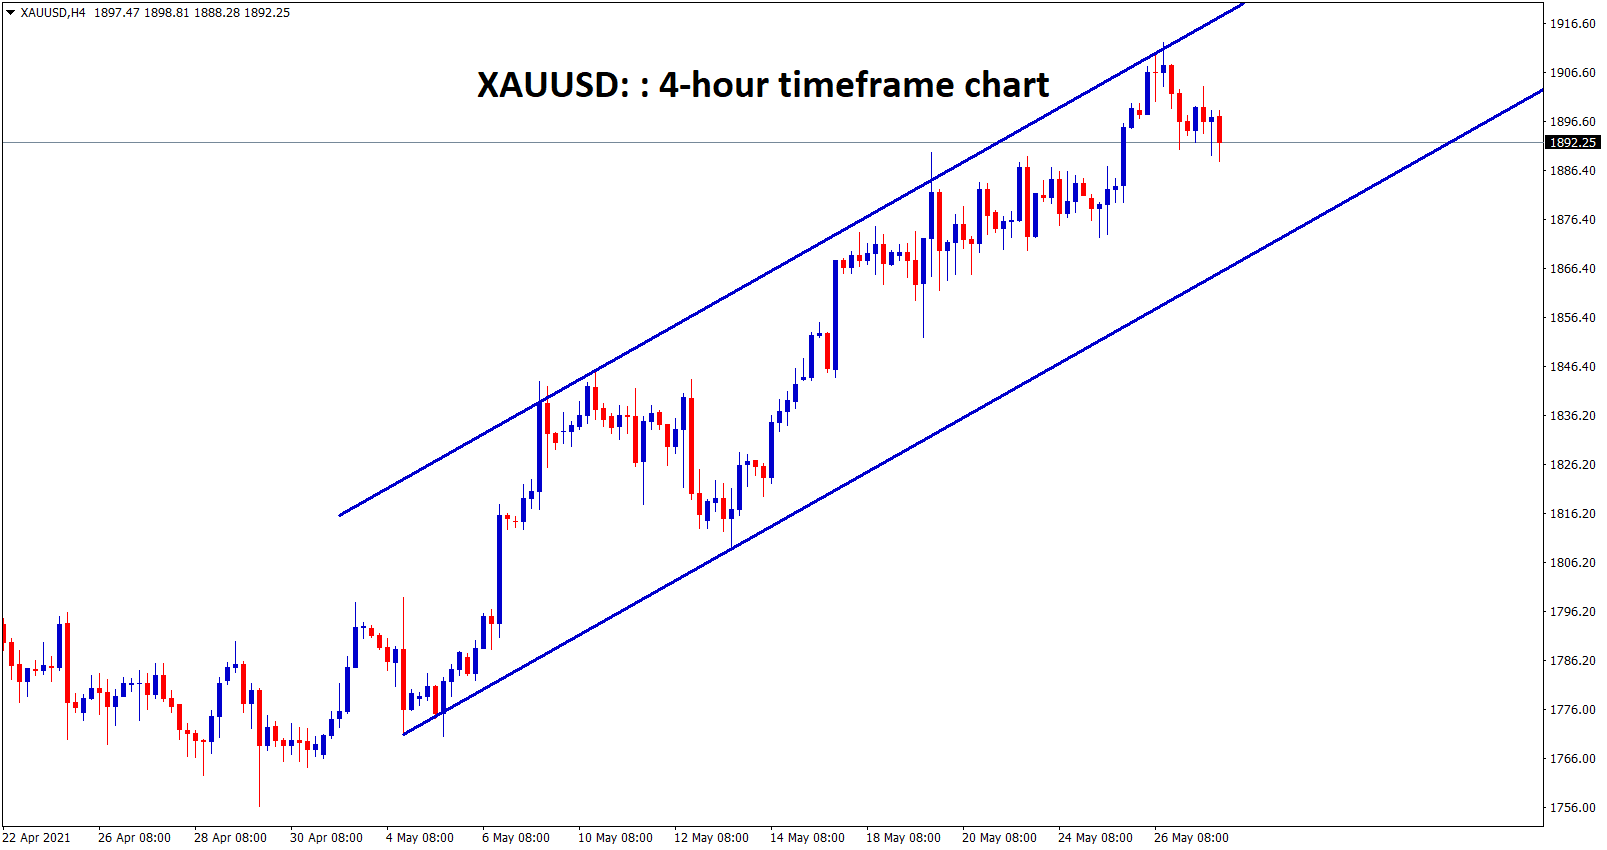 Gold XAUUSD is moving in an uptrend channel ranges